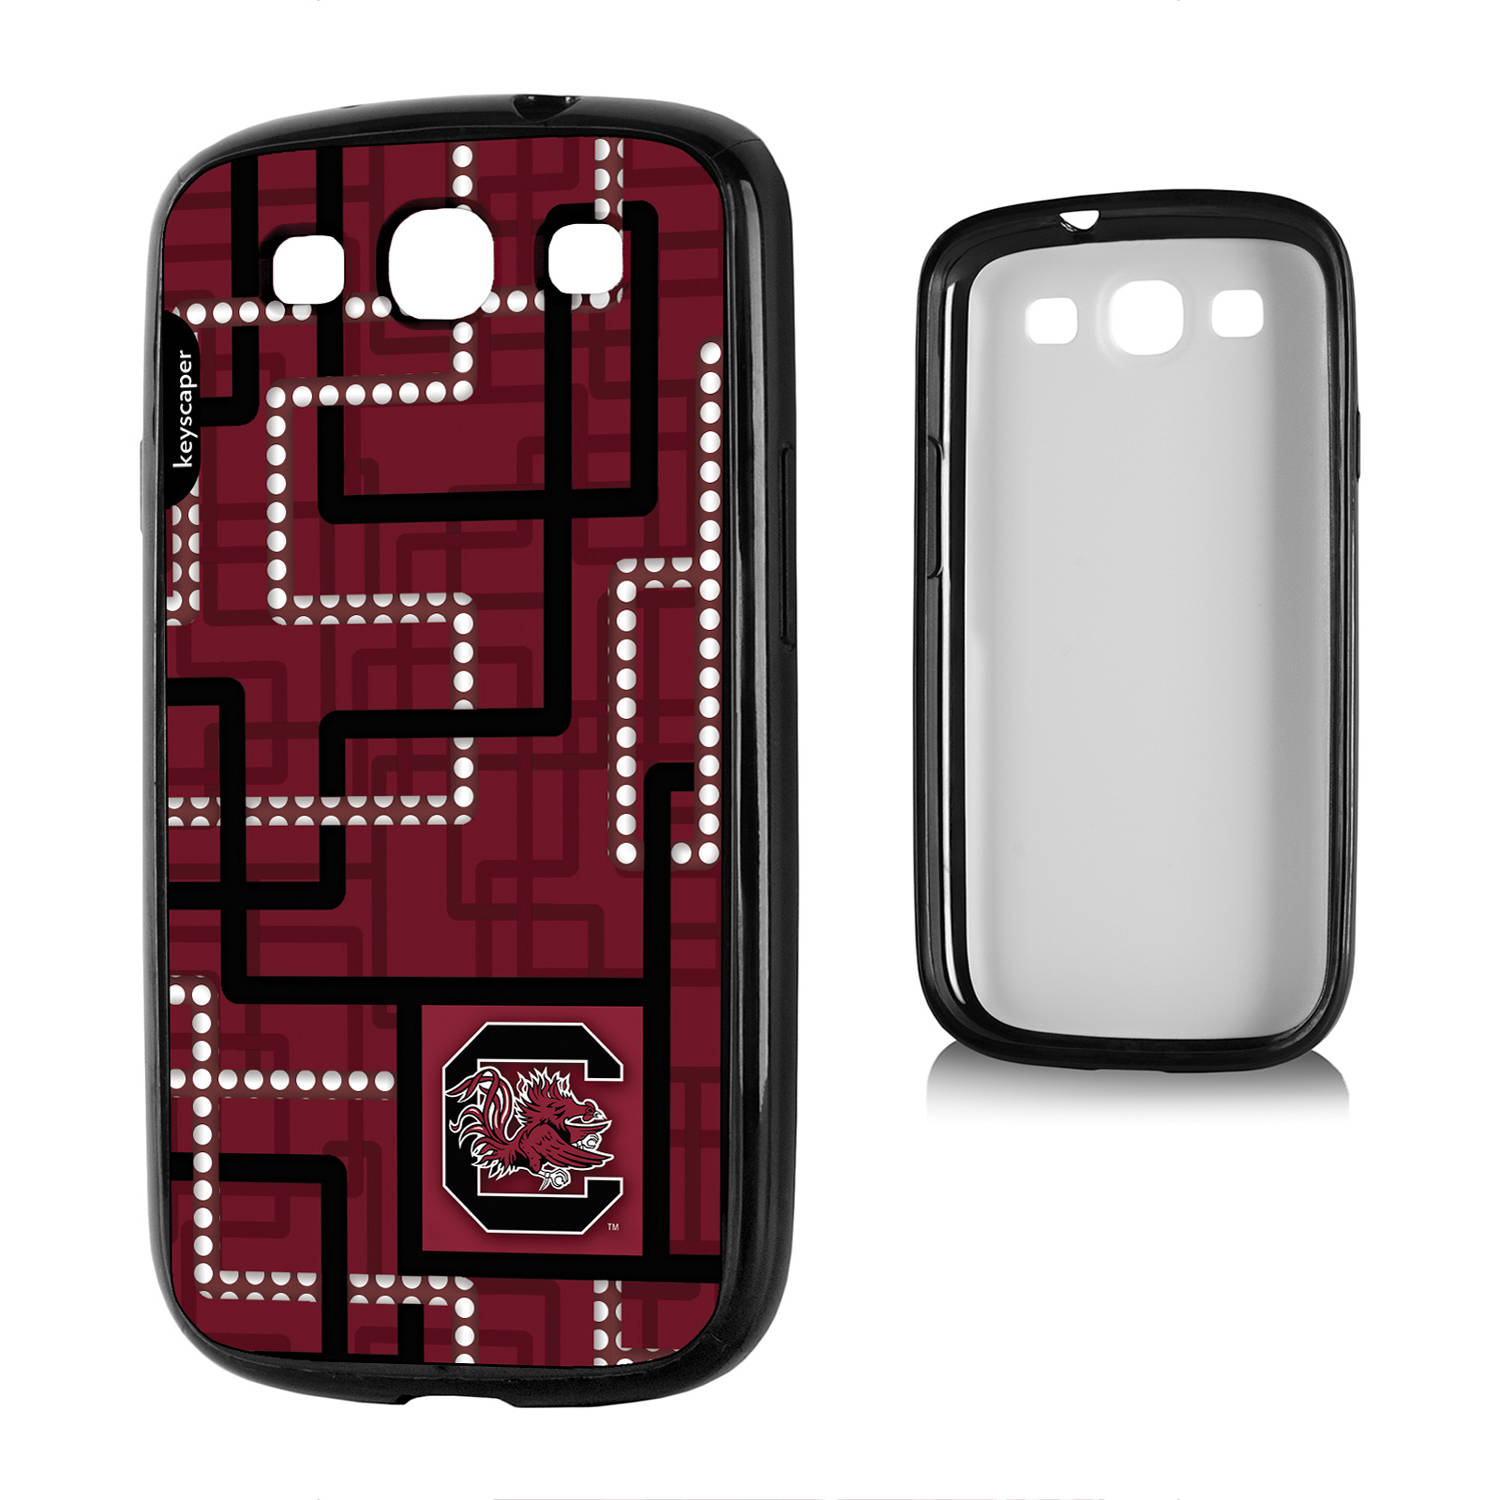 South Carolina Fighting Gamecocks Galaxy S3 Bumper Case